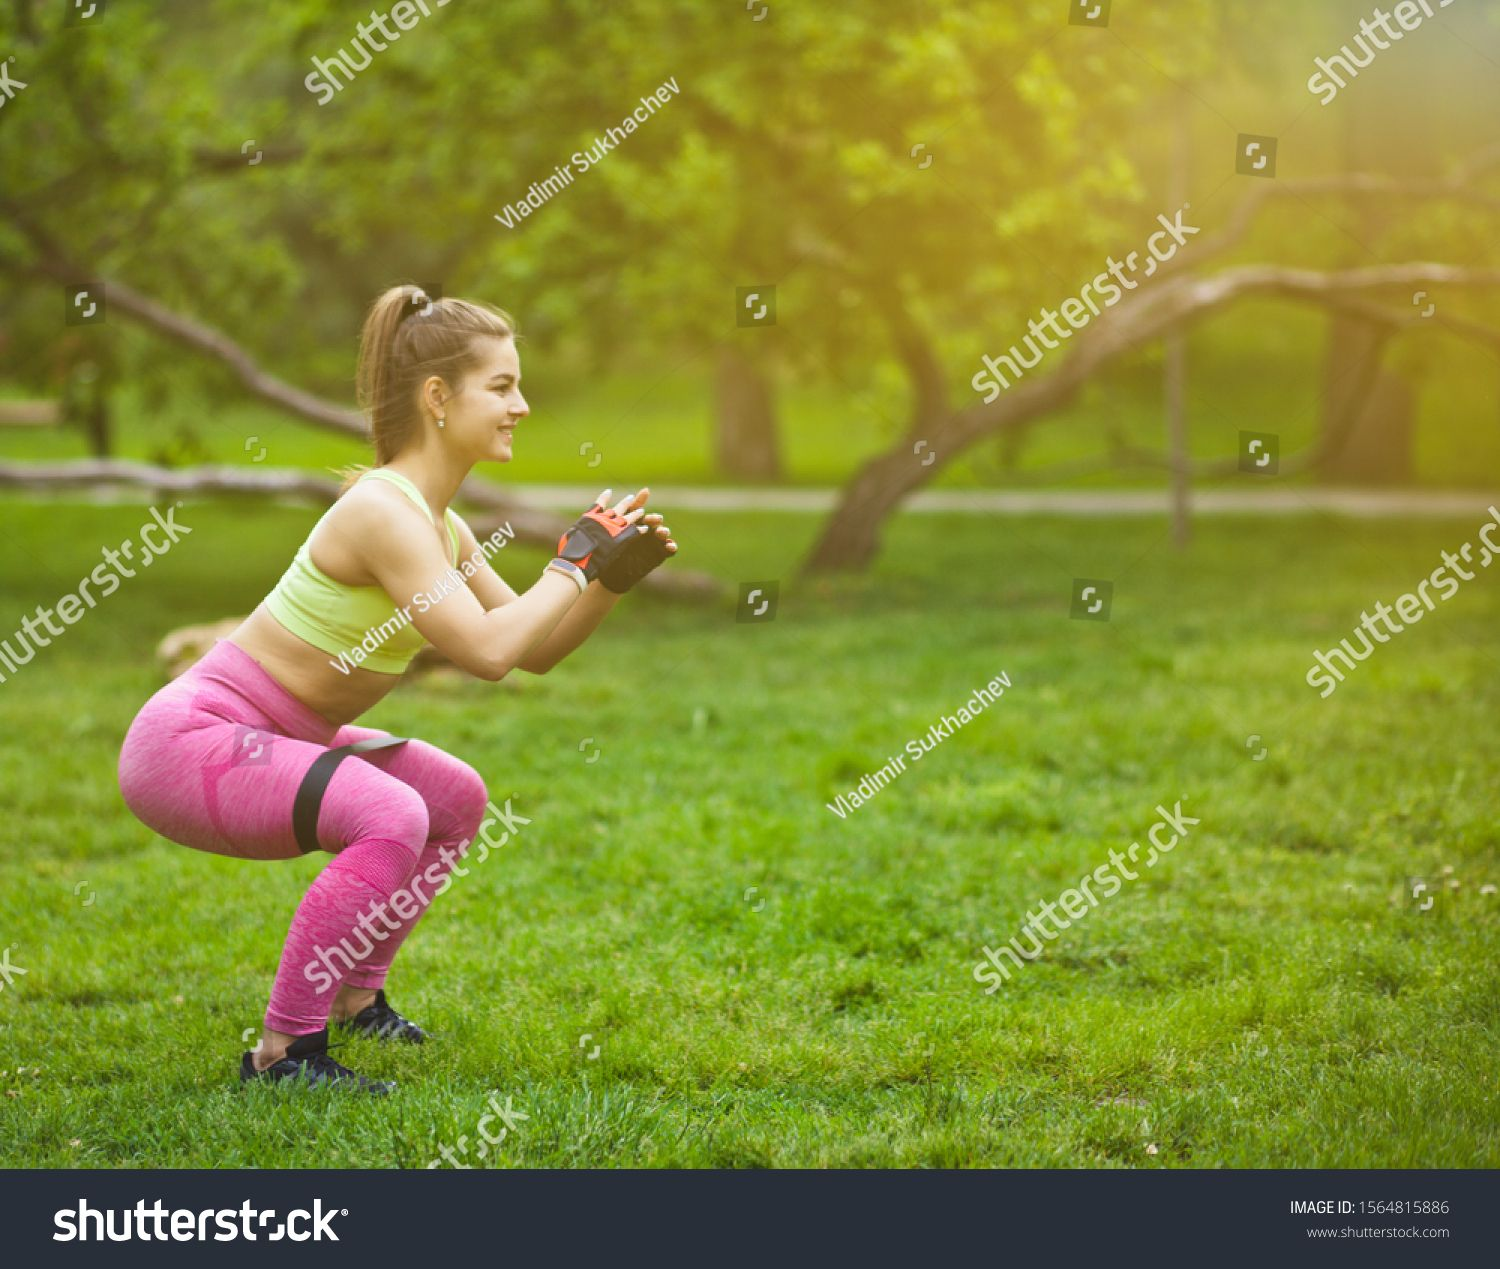 Sporty woman doing squats with fitness gum expander in the park outdoors #Sponsored , #Ad, #squats#f...